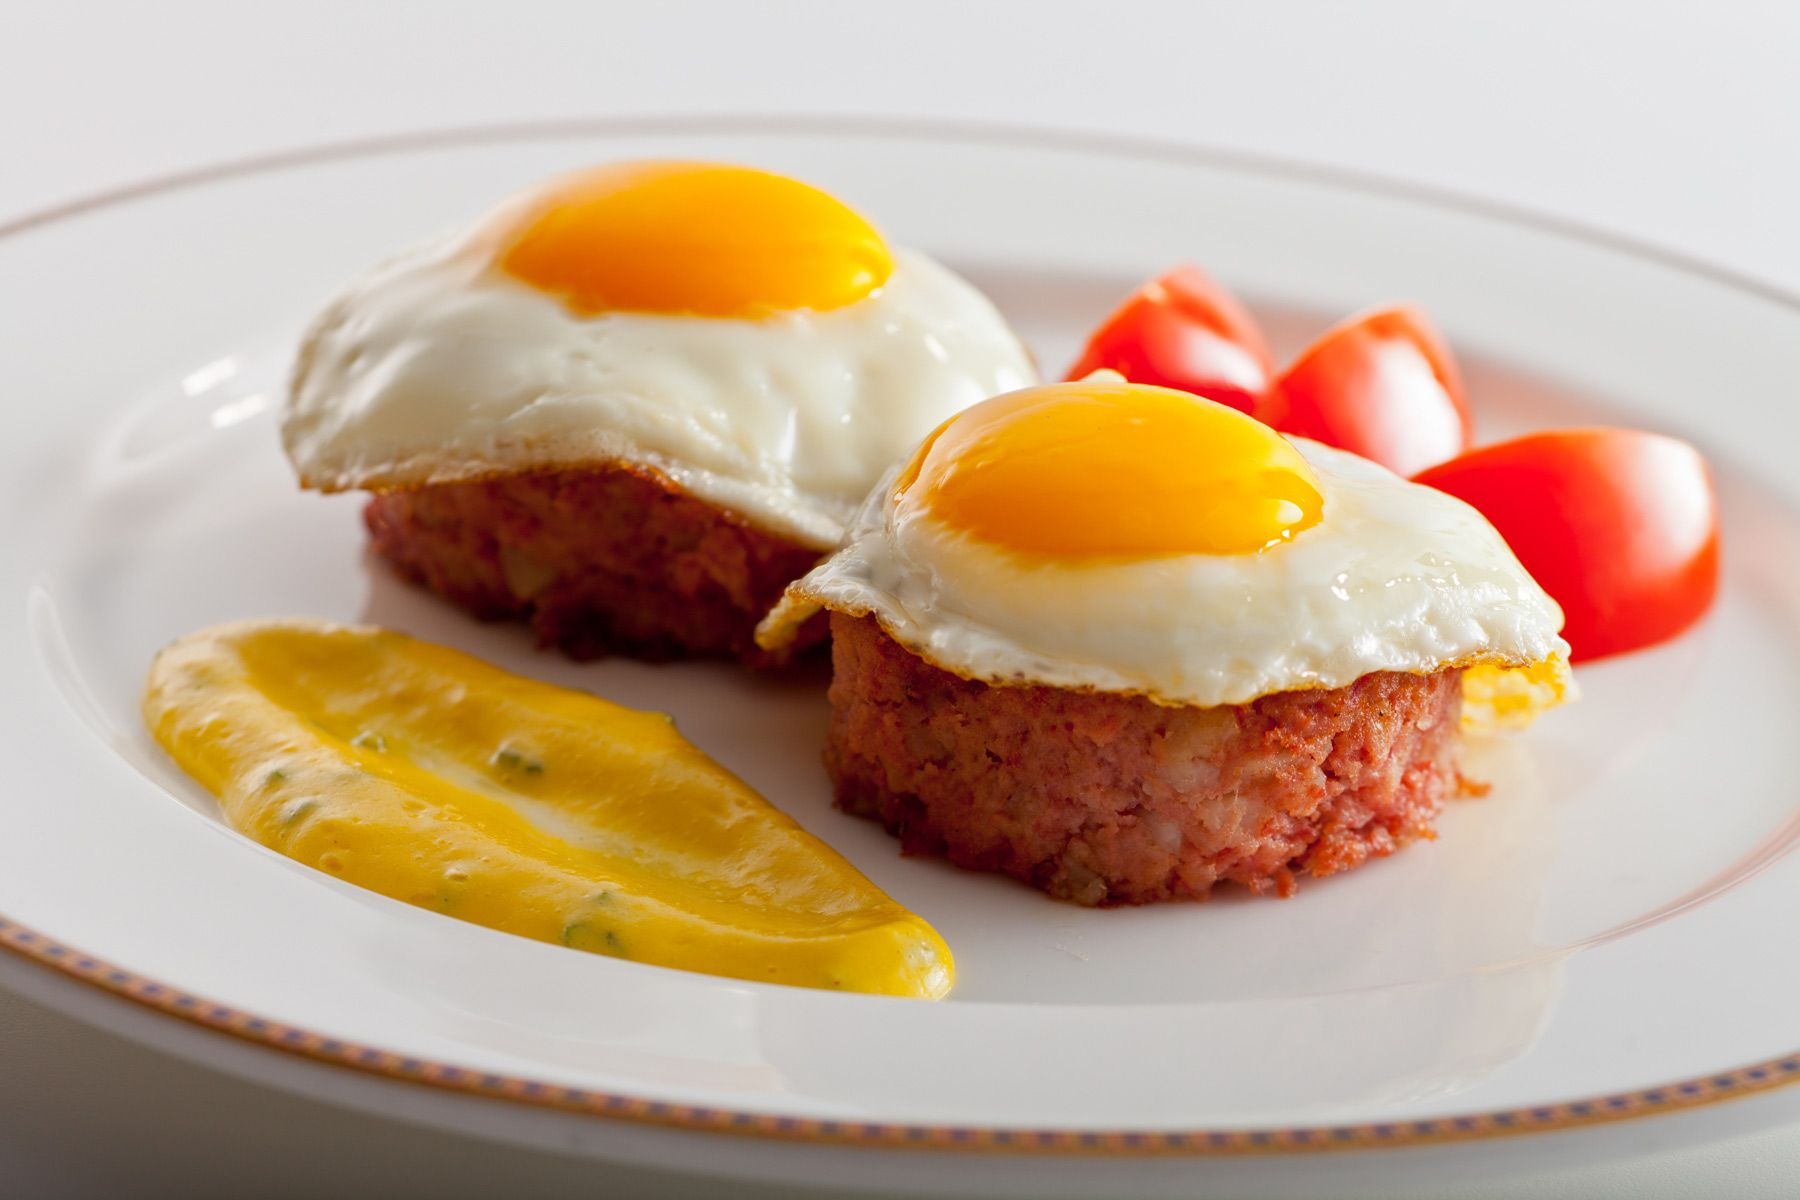 Sunny-side-up-eggs-on-corn-beef-hash-by-Chef-Michael-Garbin-Union-League-of-Chicago.jpg